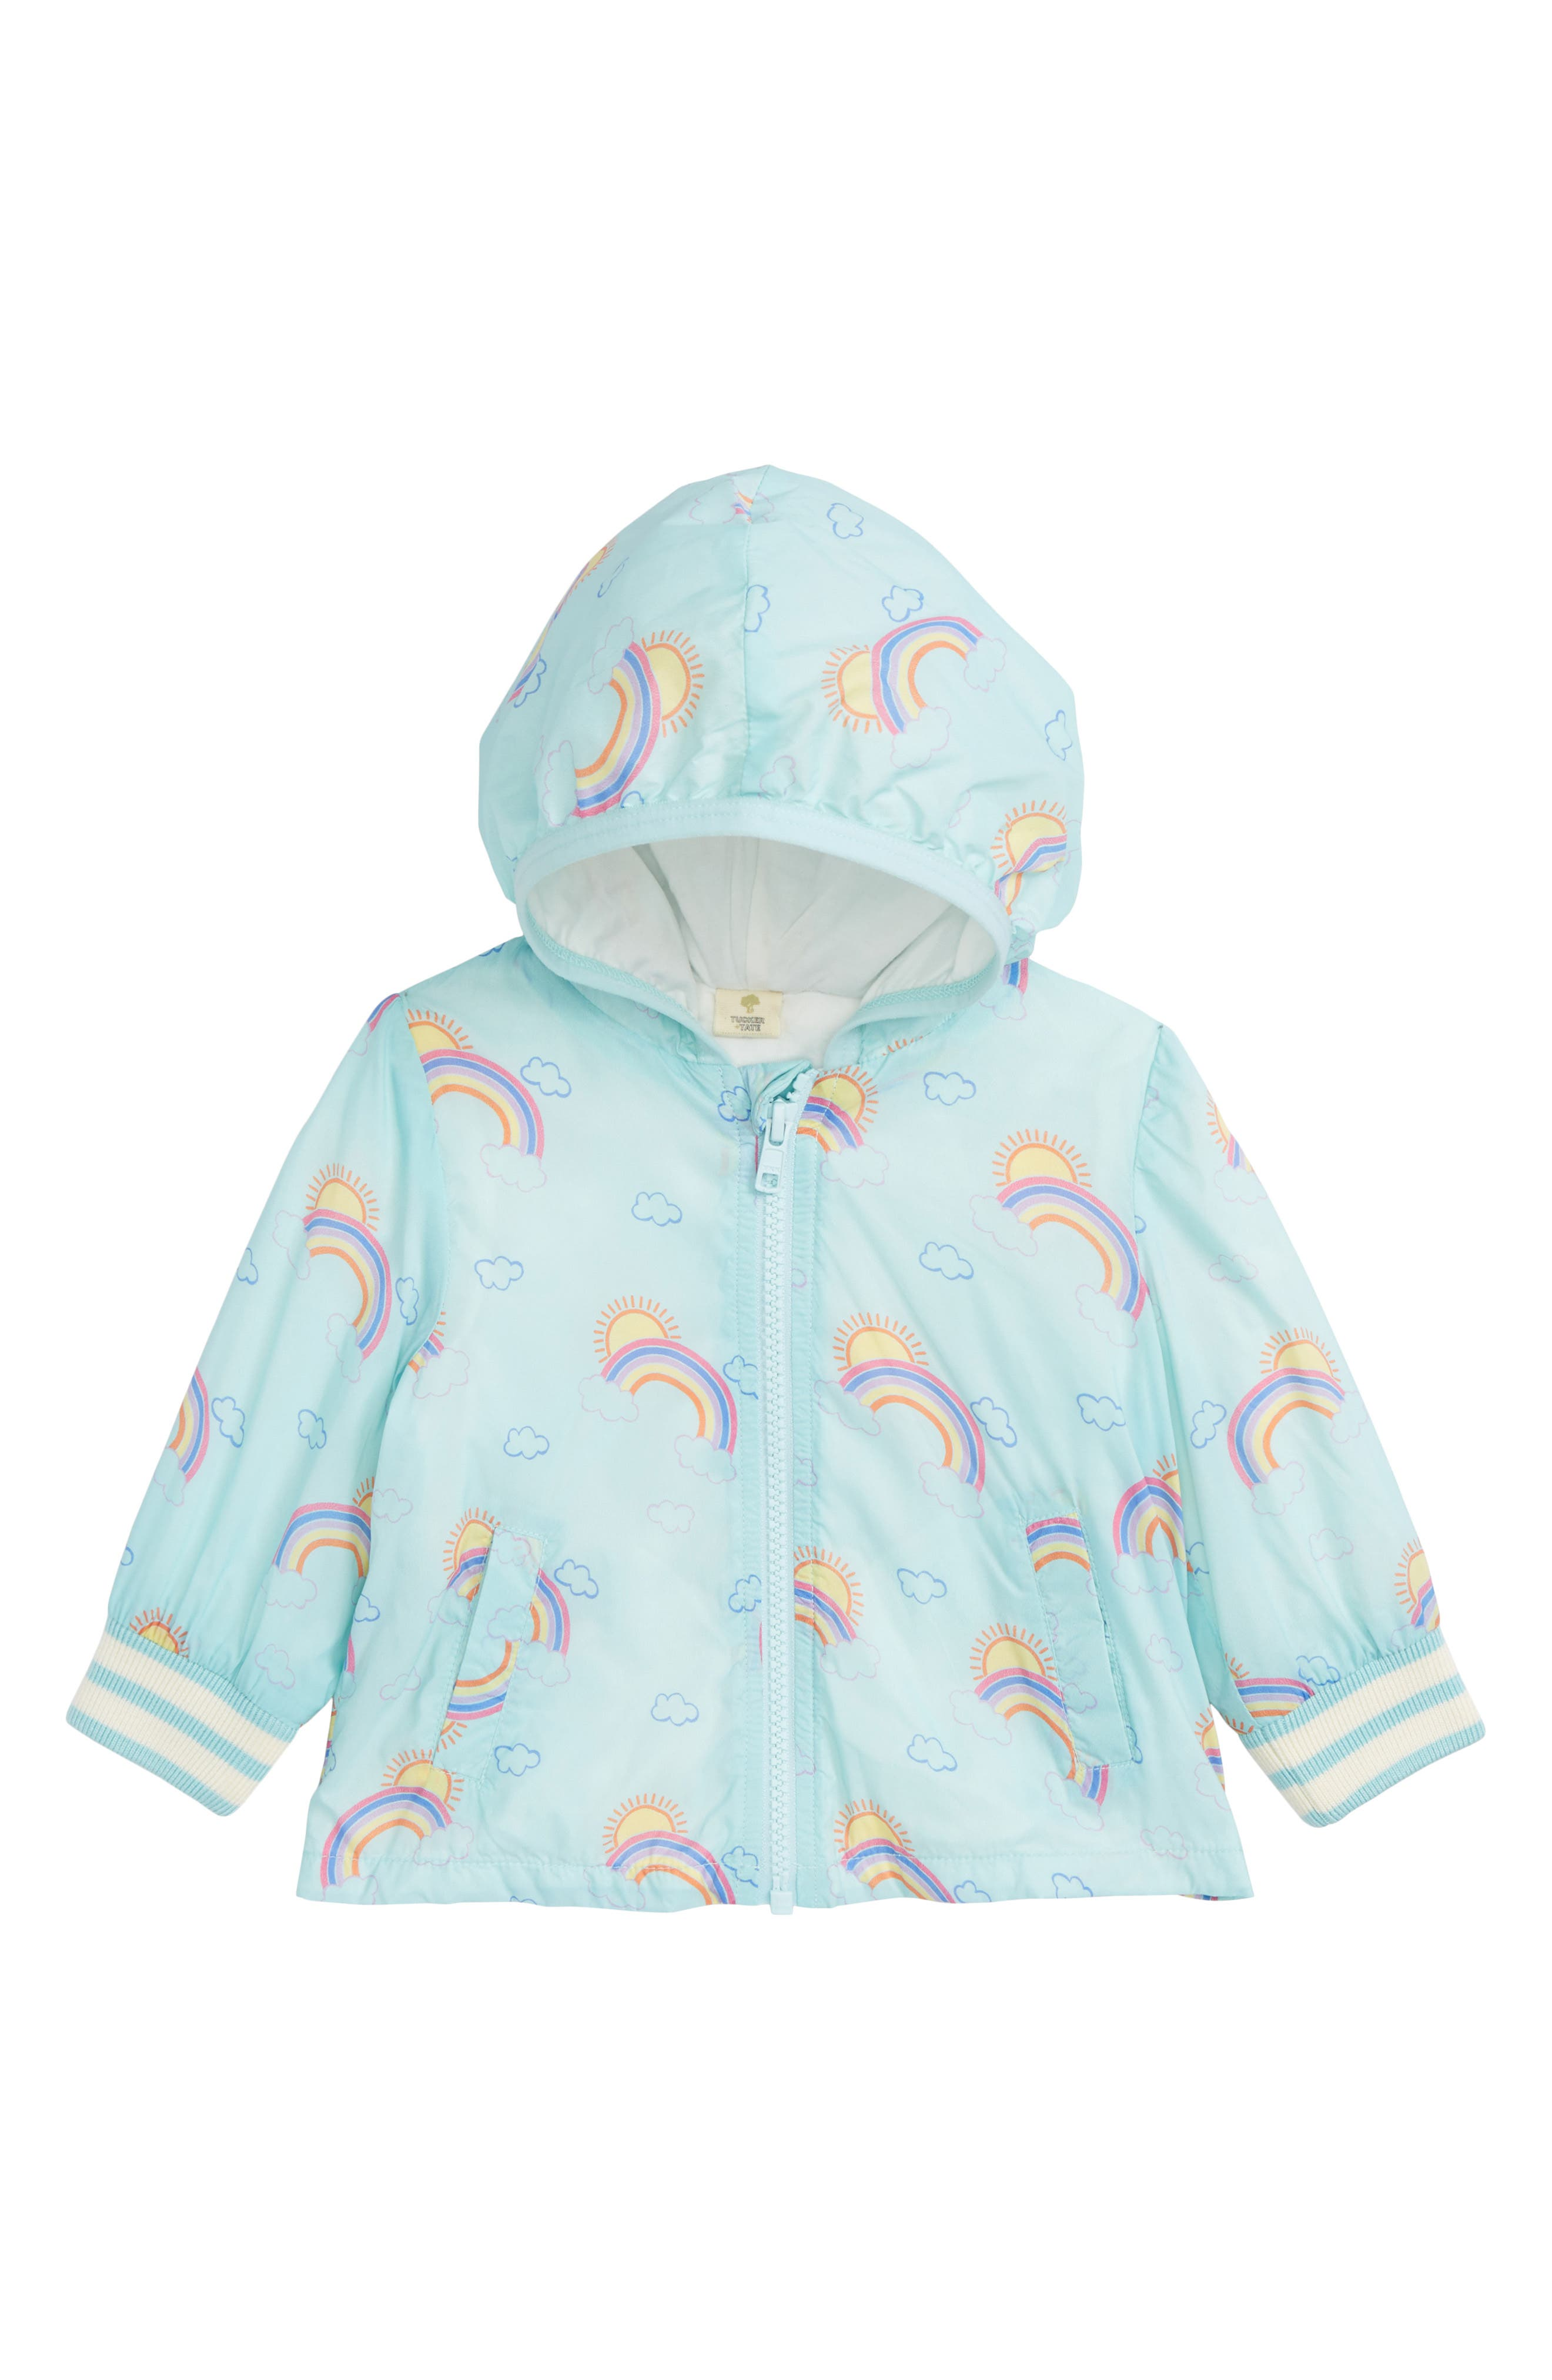 Rainbow Hooded Nylon Windbreaker,                             Main thumbnail 1, color,                             Blue Glow Rainbows